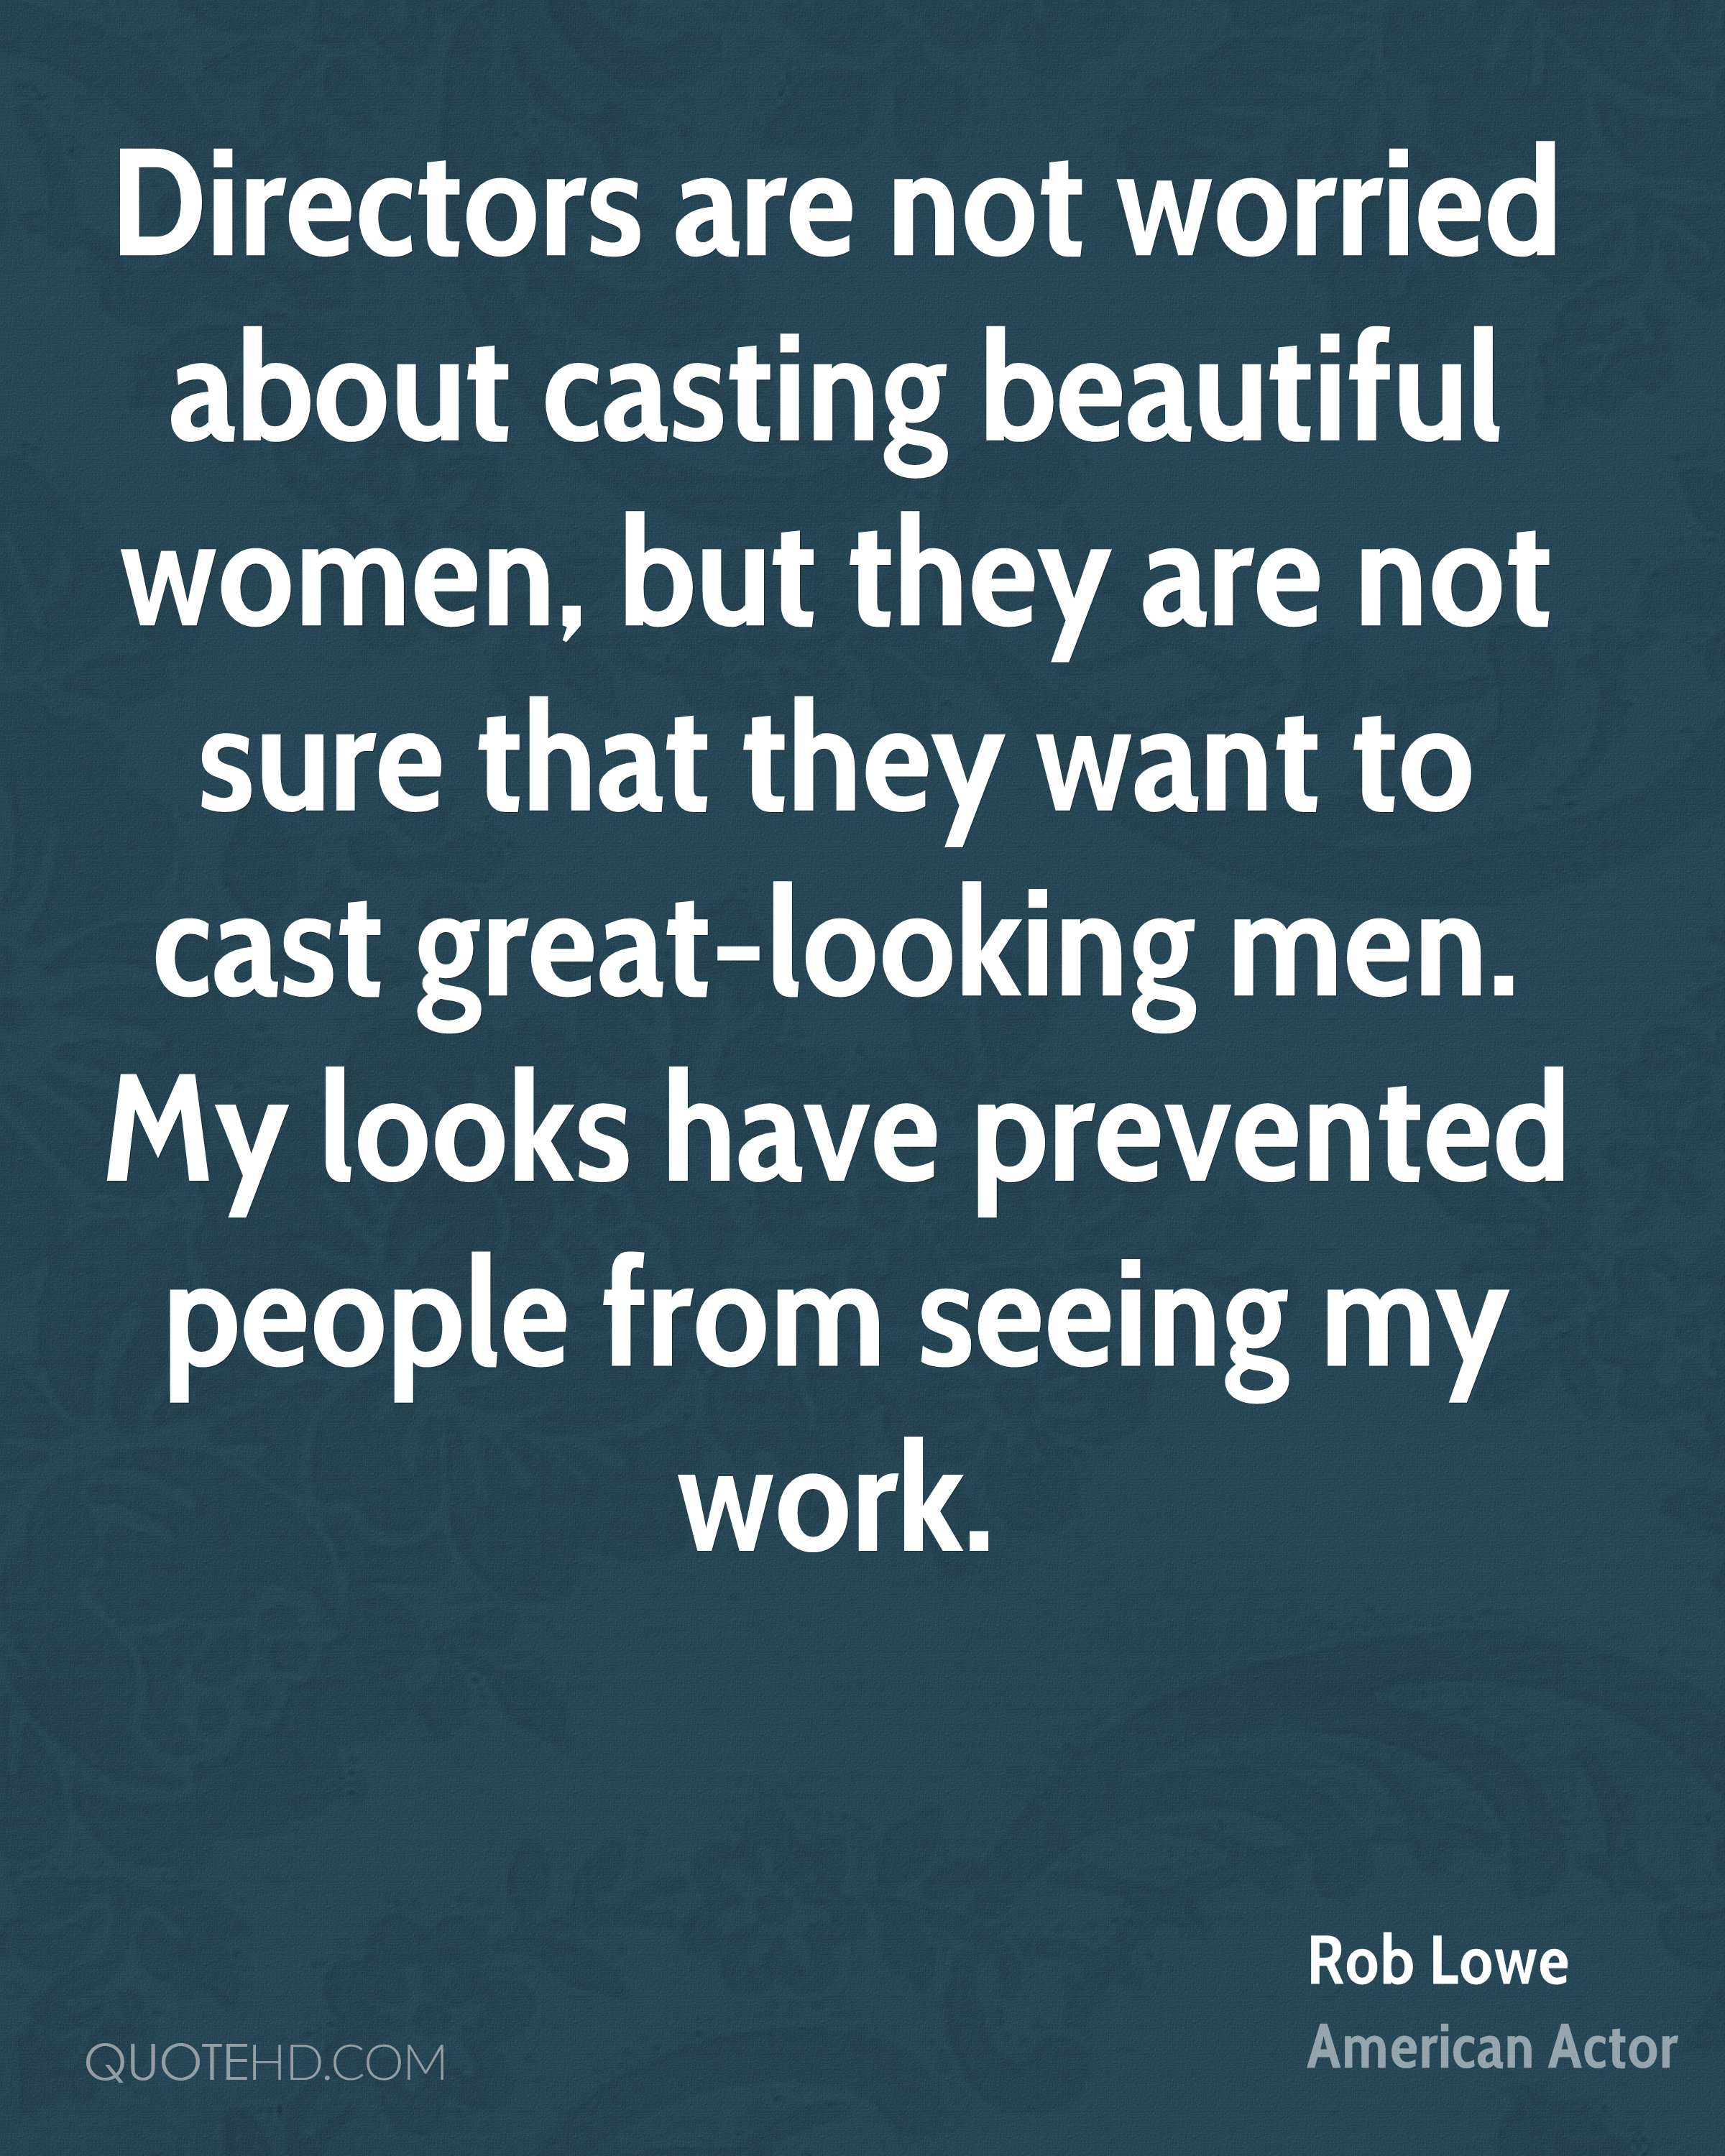 Directors are not worried about casting beautiful women, but they are not sure that they want to cast great-looking men. My looks have prevented people from seeing my work.